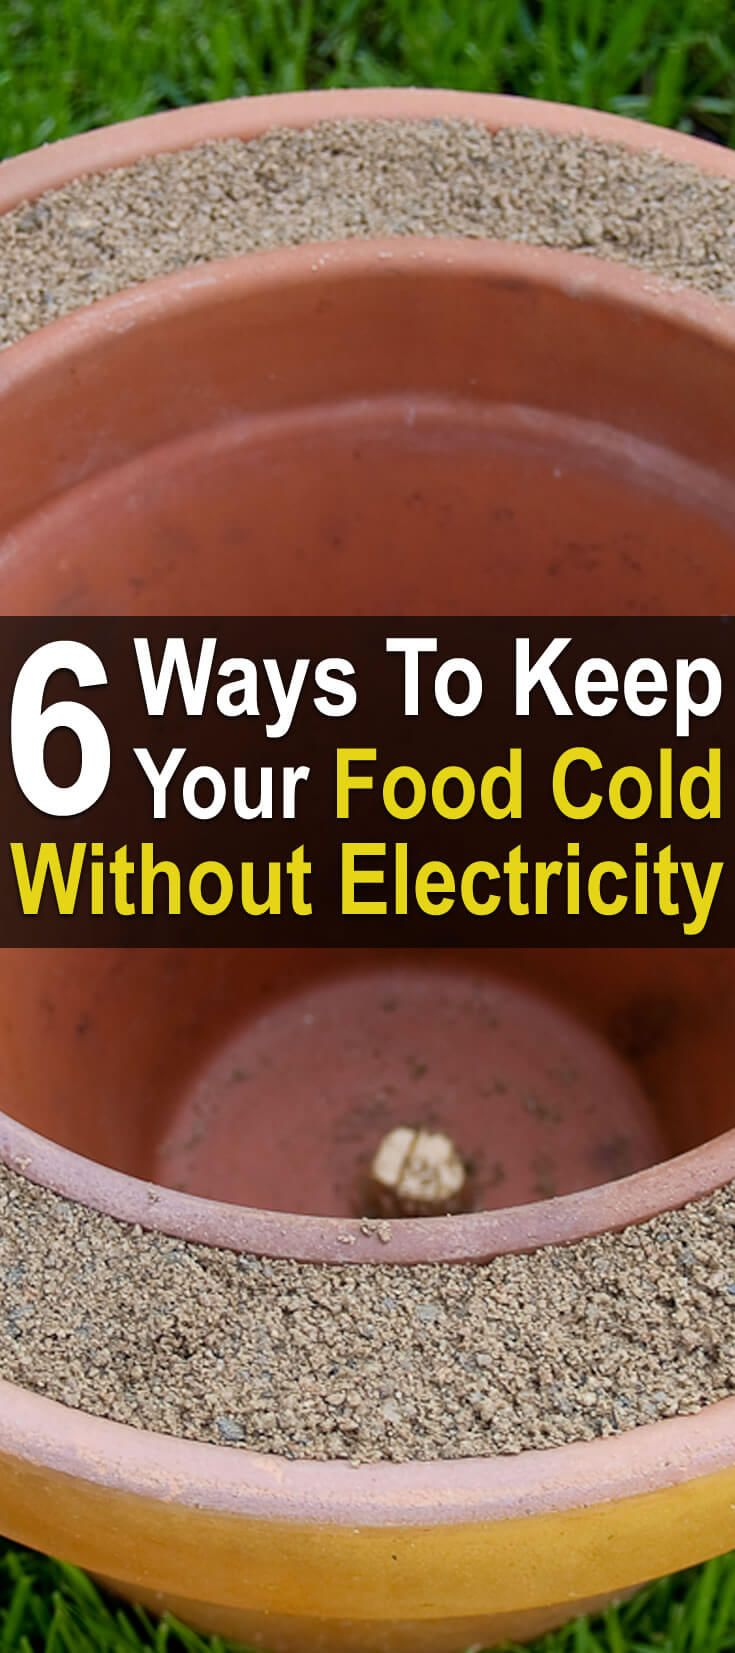 What if a disaster knocks out the power to your home? What will happen to all that cold food in your refrigerator? Here are six ways to keep it cold.